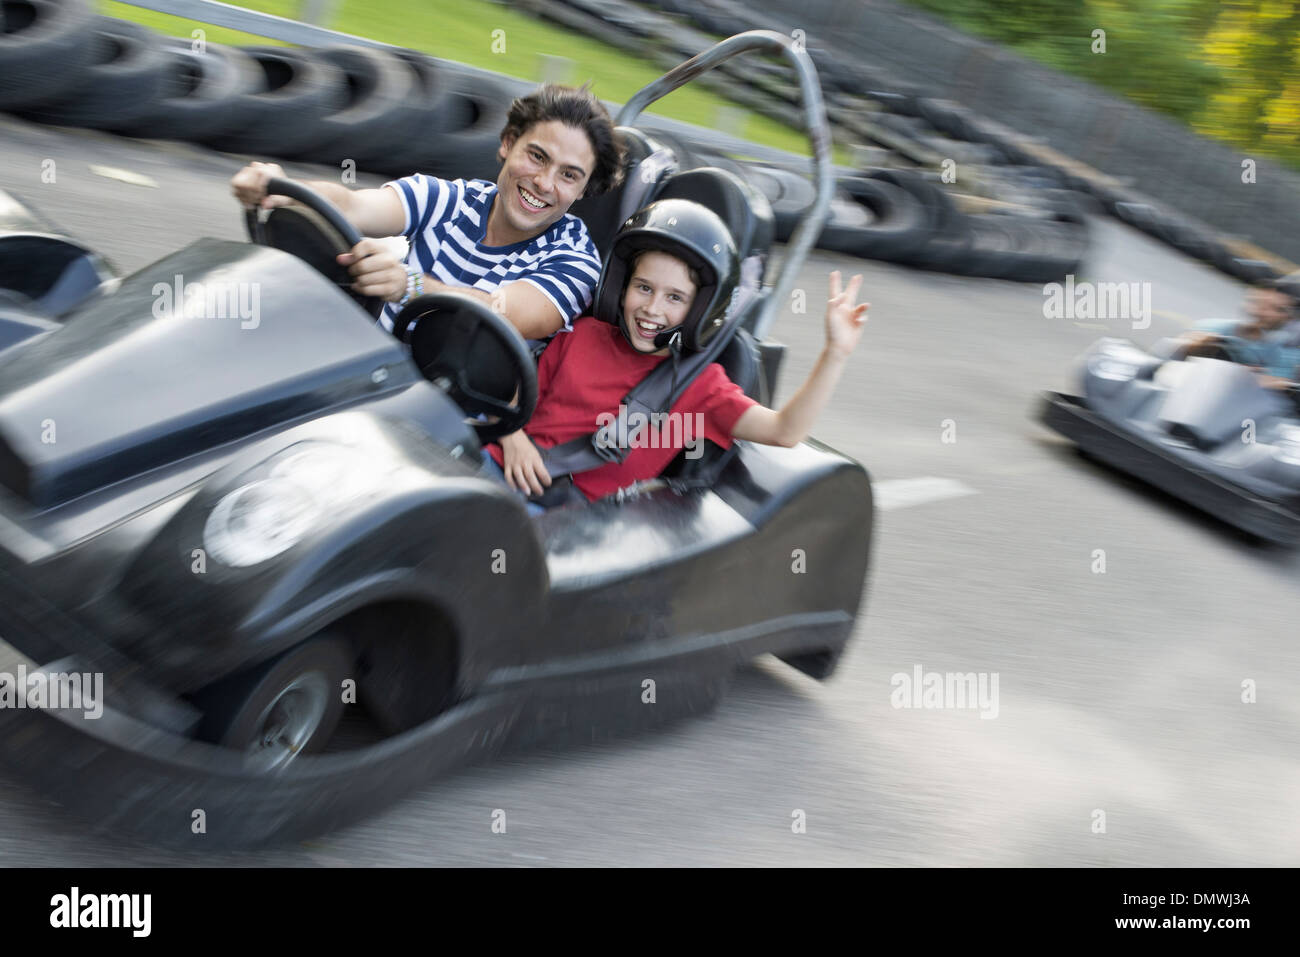 Boys and men go-karting on a track. - Stock Image